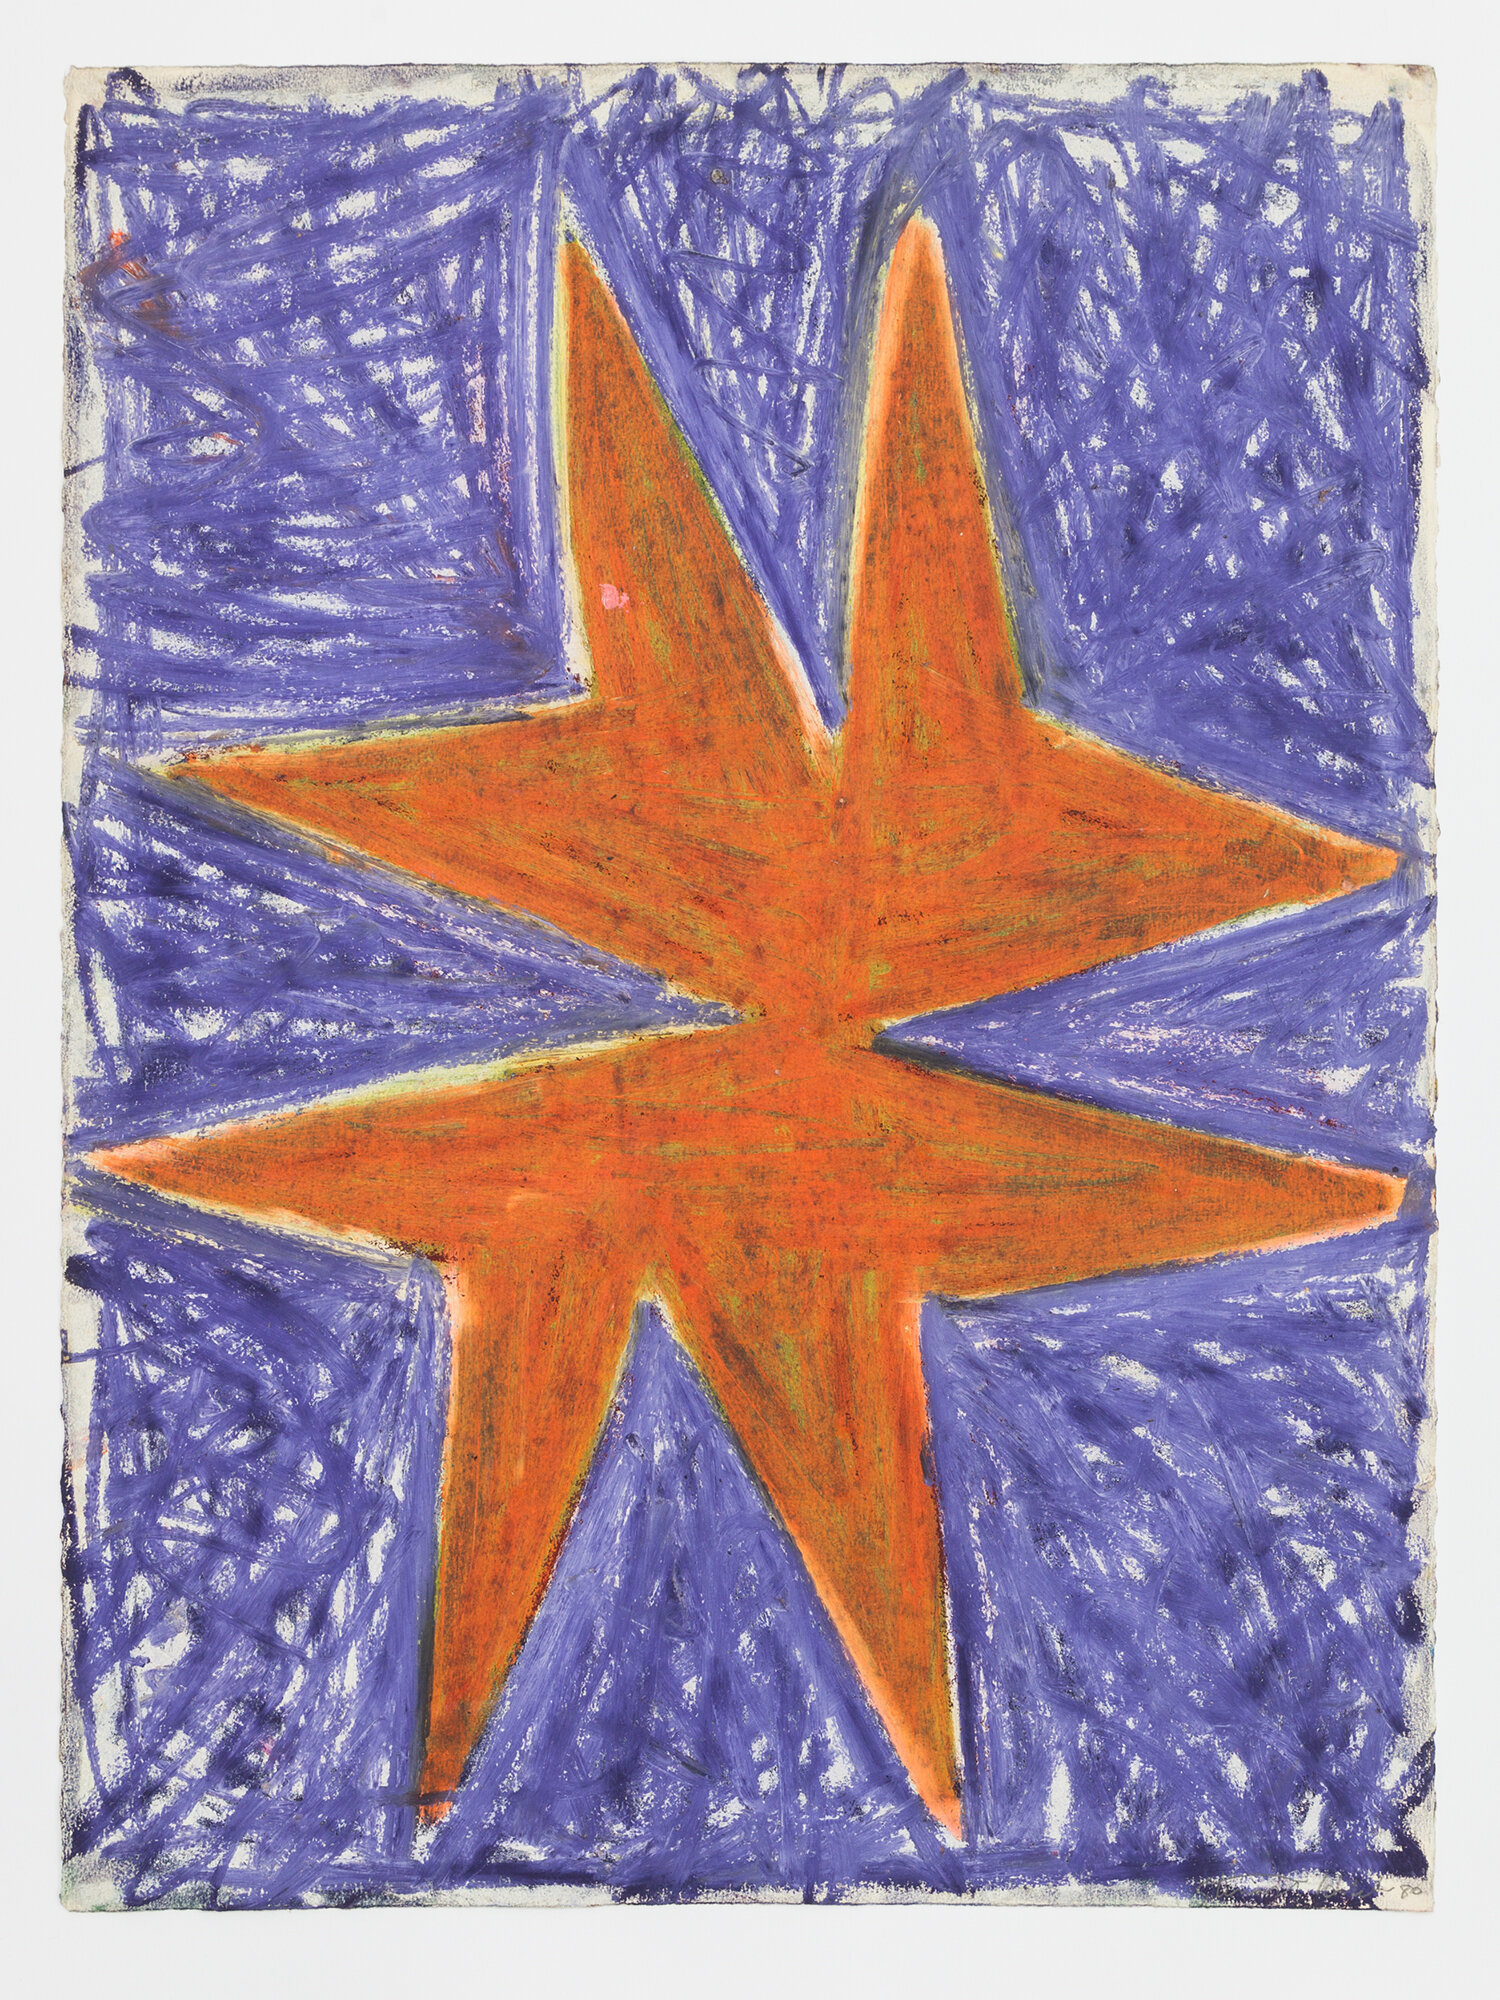 Stewart Hitch,  Untitled,  1980, Oil stick and pastel on paper 30 x 22 inches